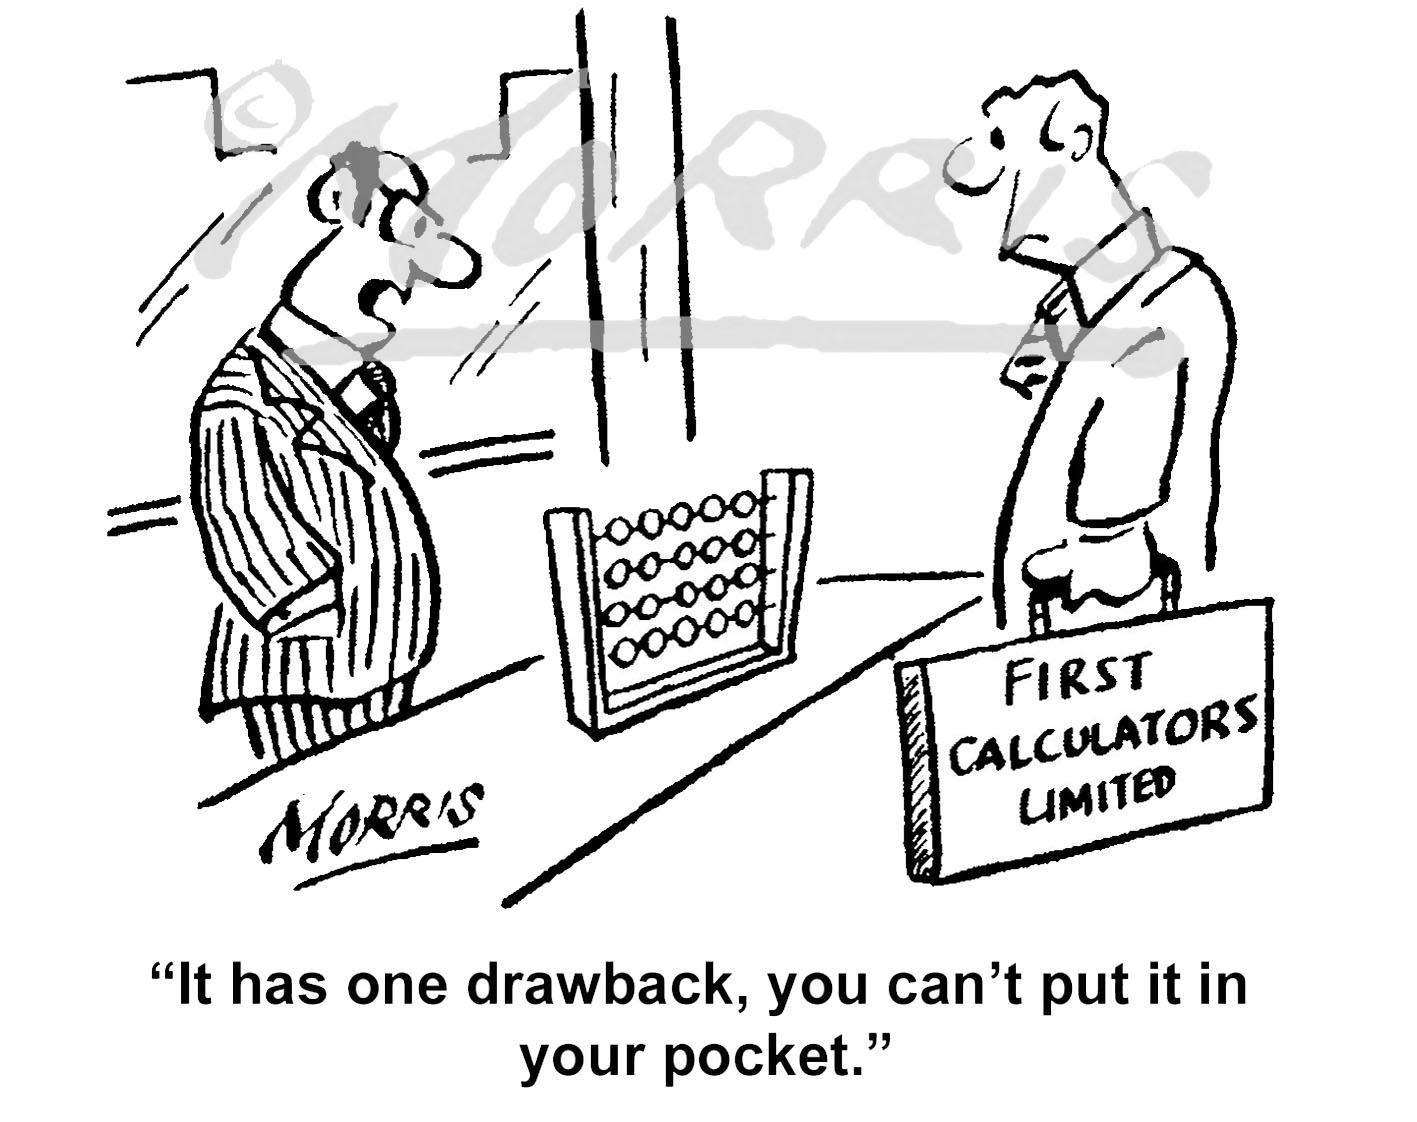 Pocket calculator comic cartoon – Ref: 7394bw